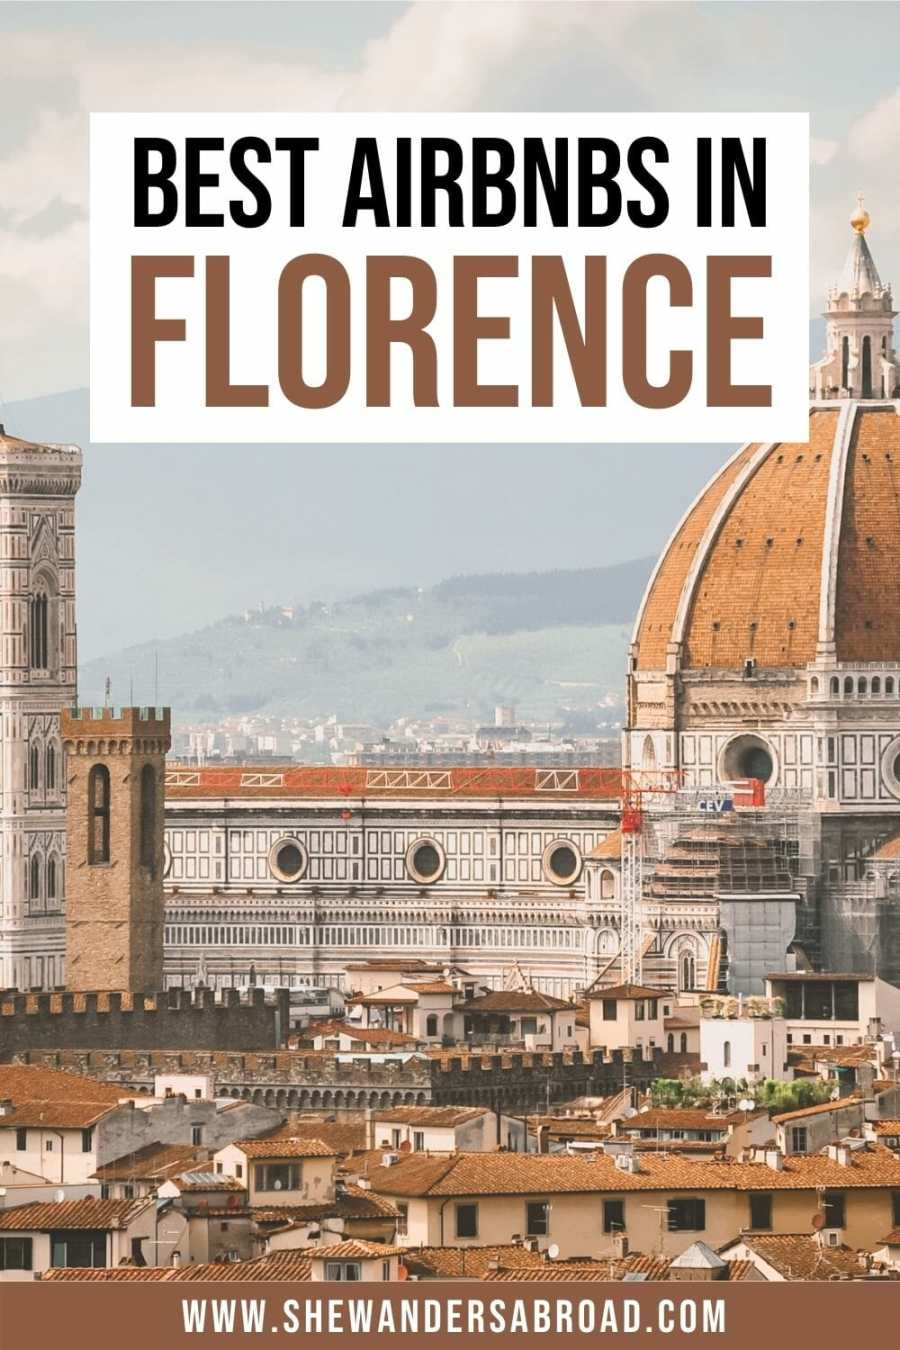 Best Airbnbs in Florence, Italy